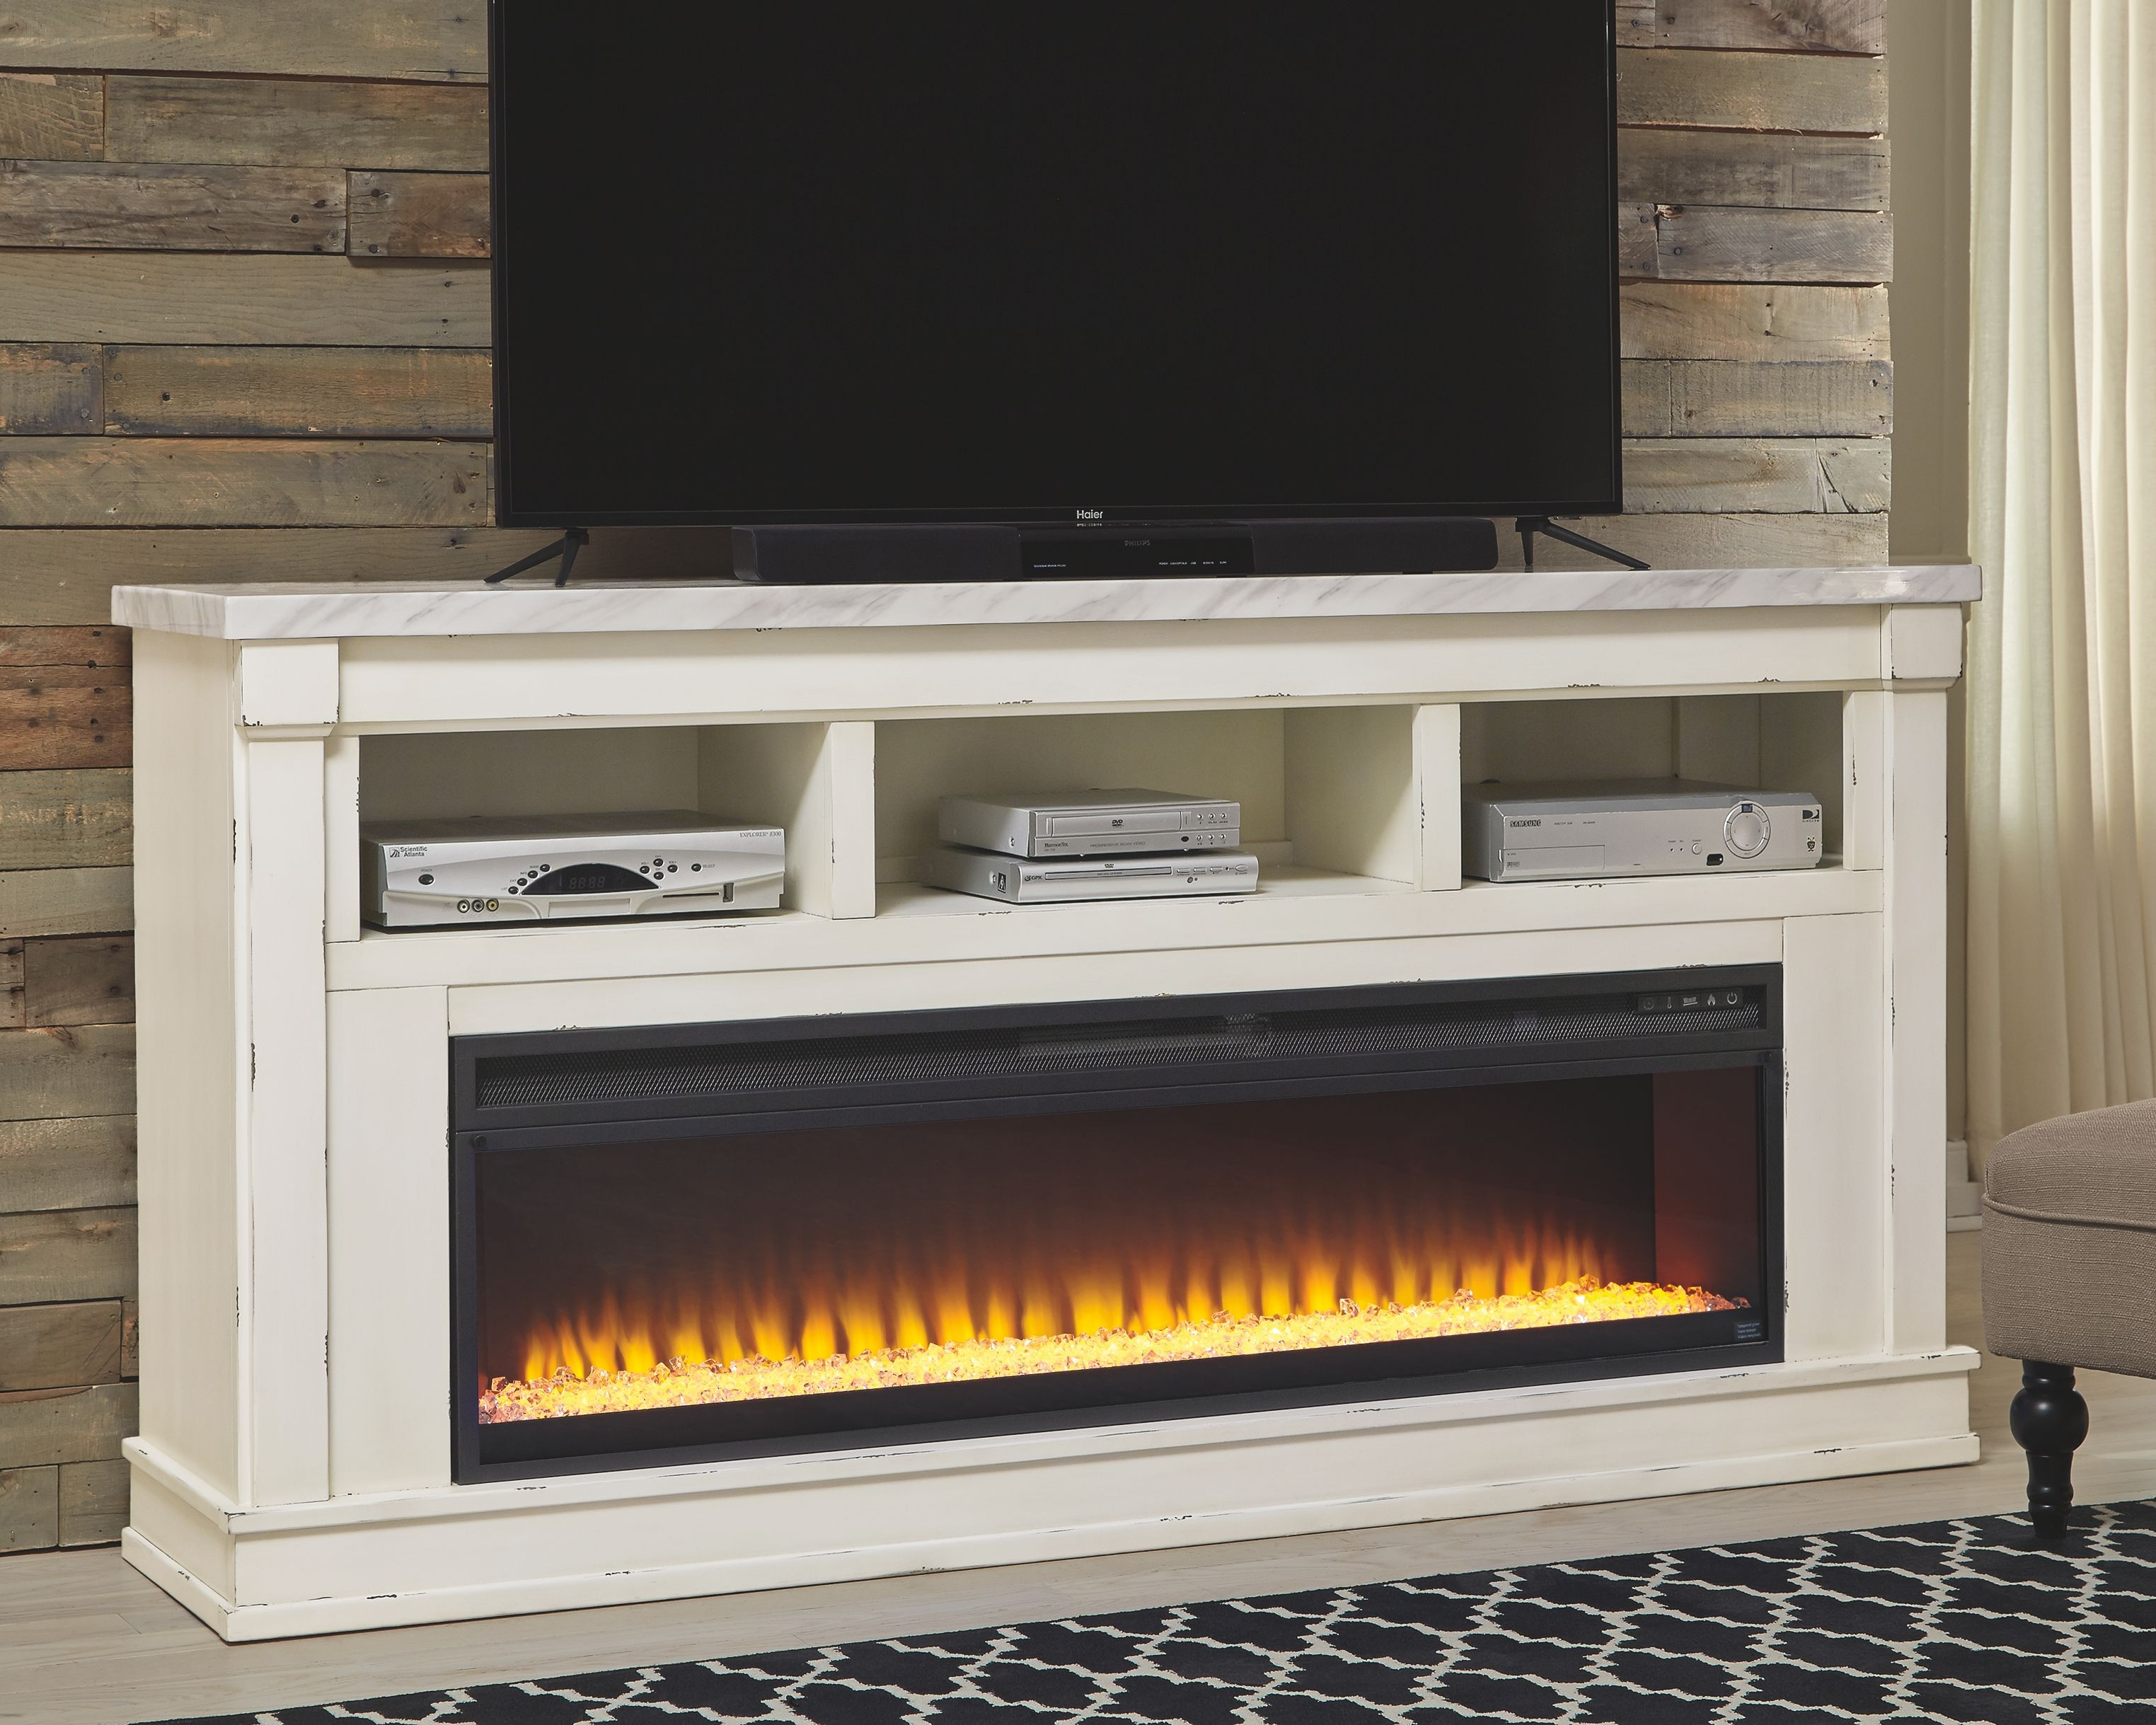 Becklyn Tv Stand With Fireplace Chipped White Tv Console With